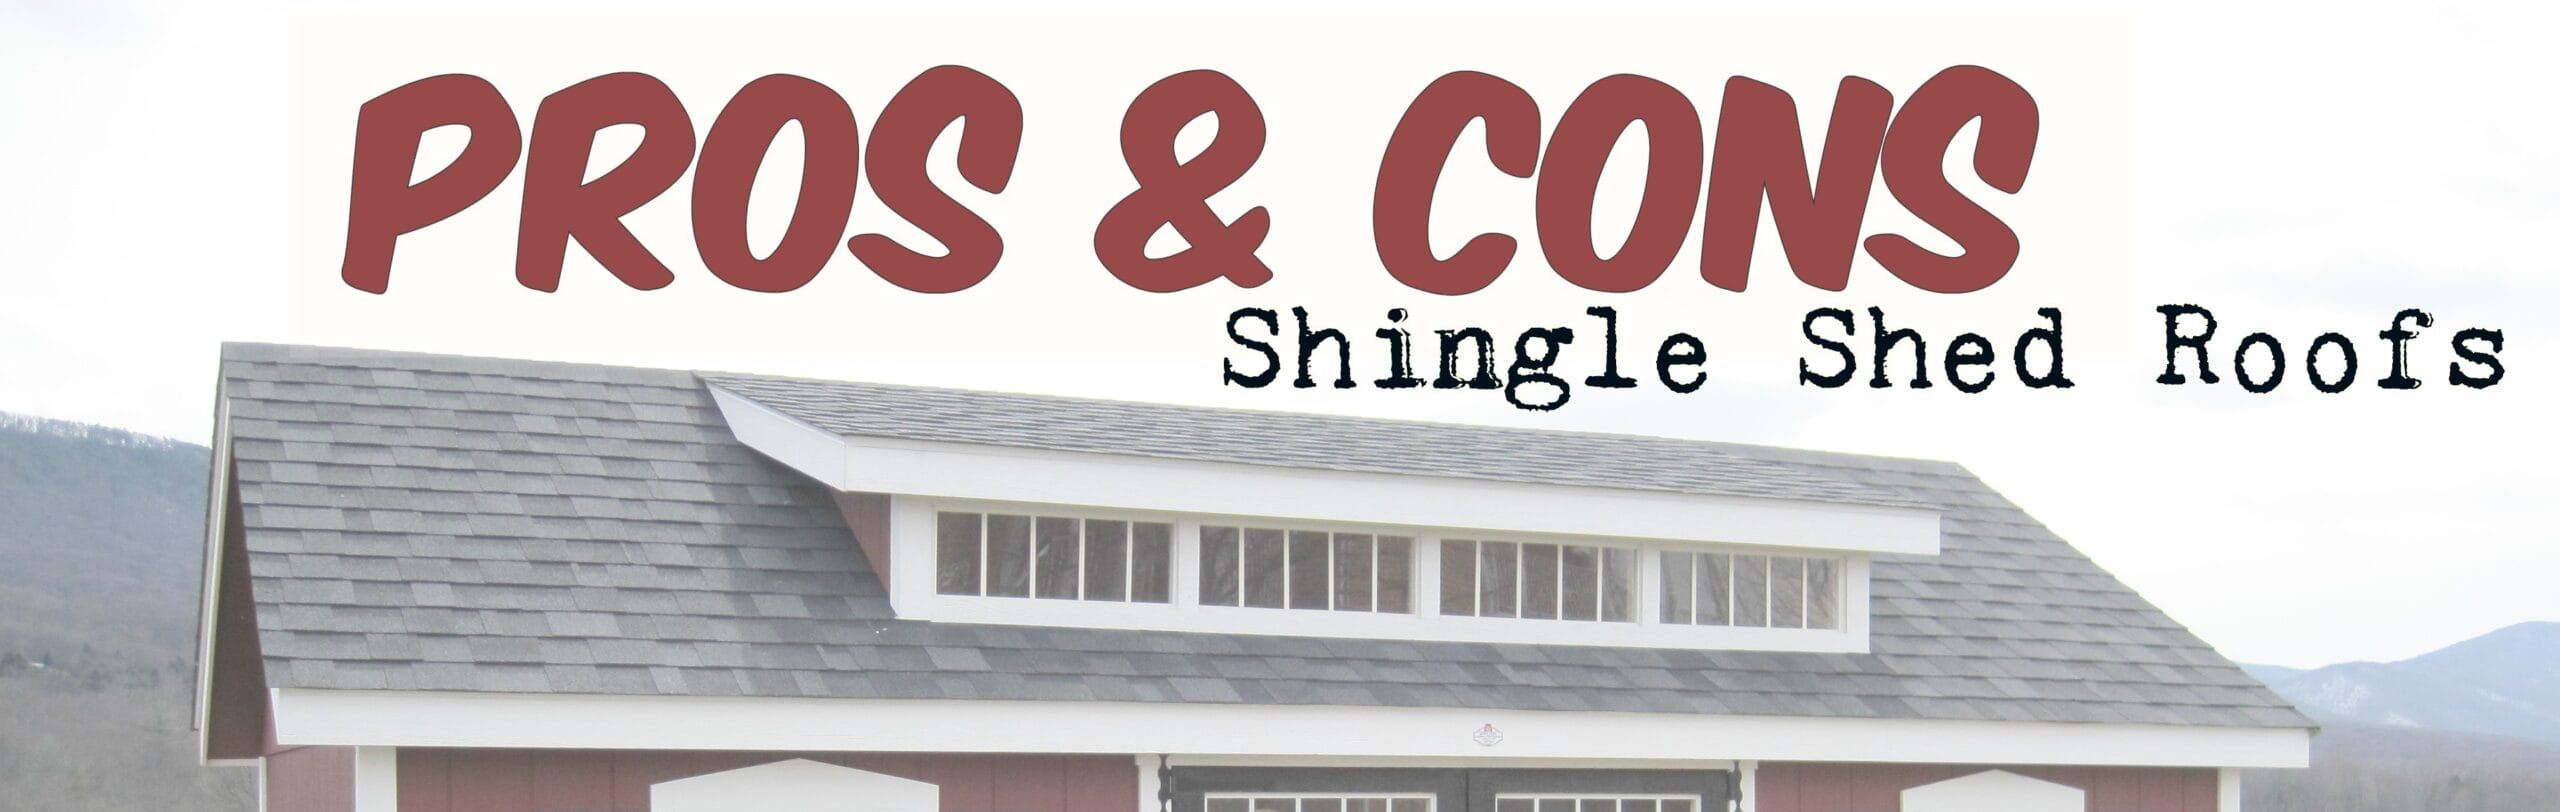 Shingle Shed roof header